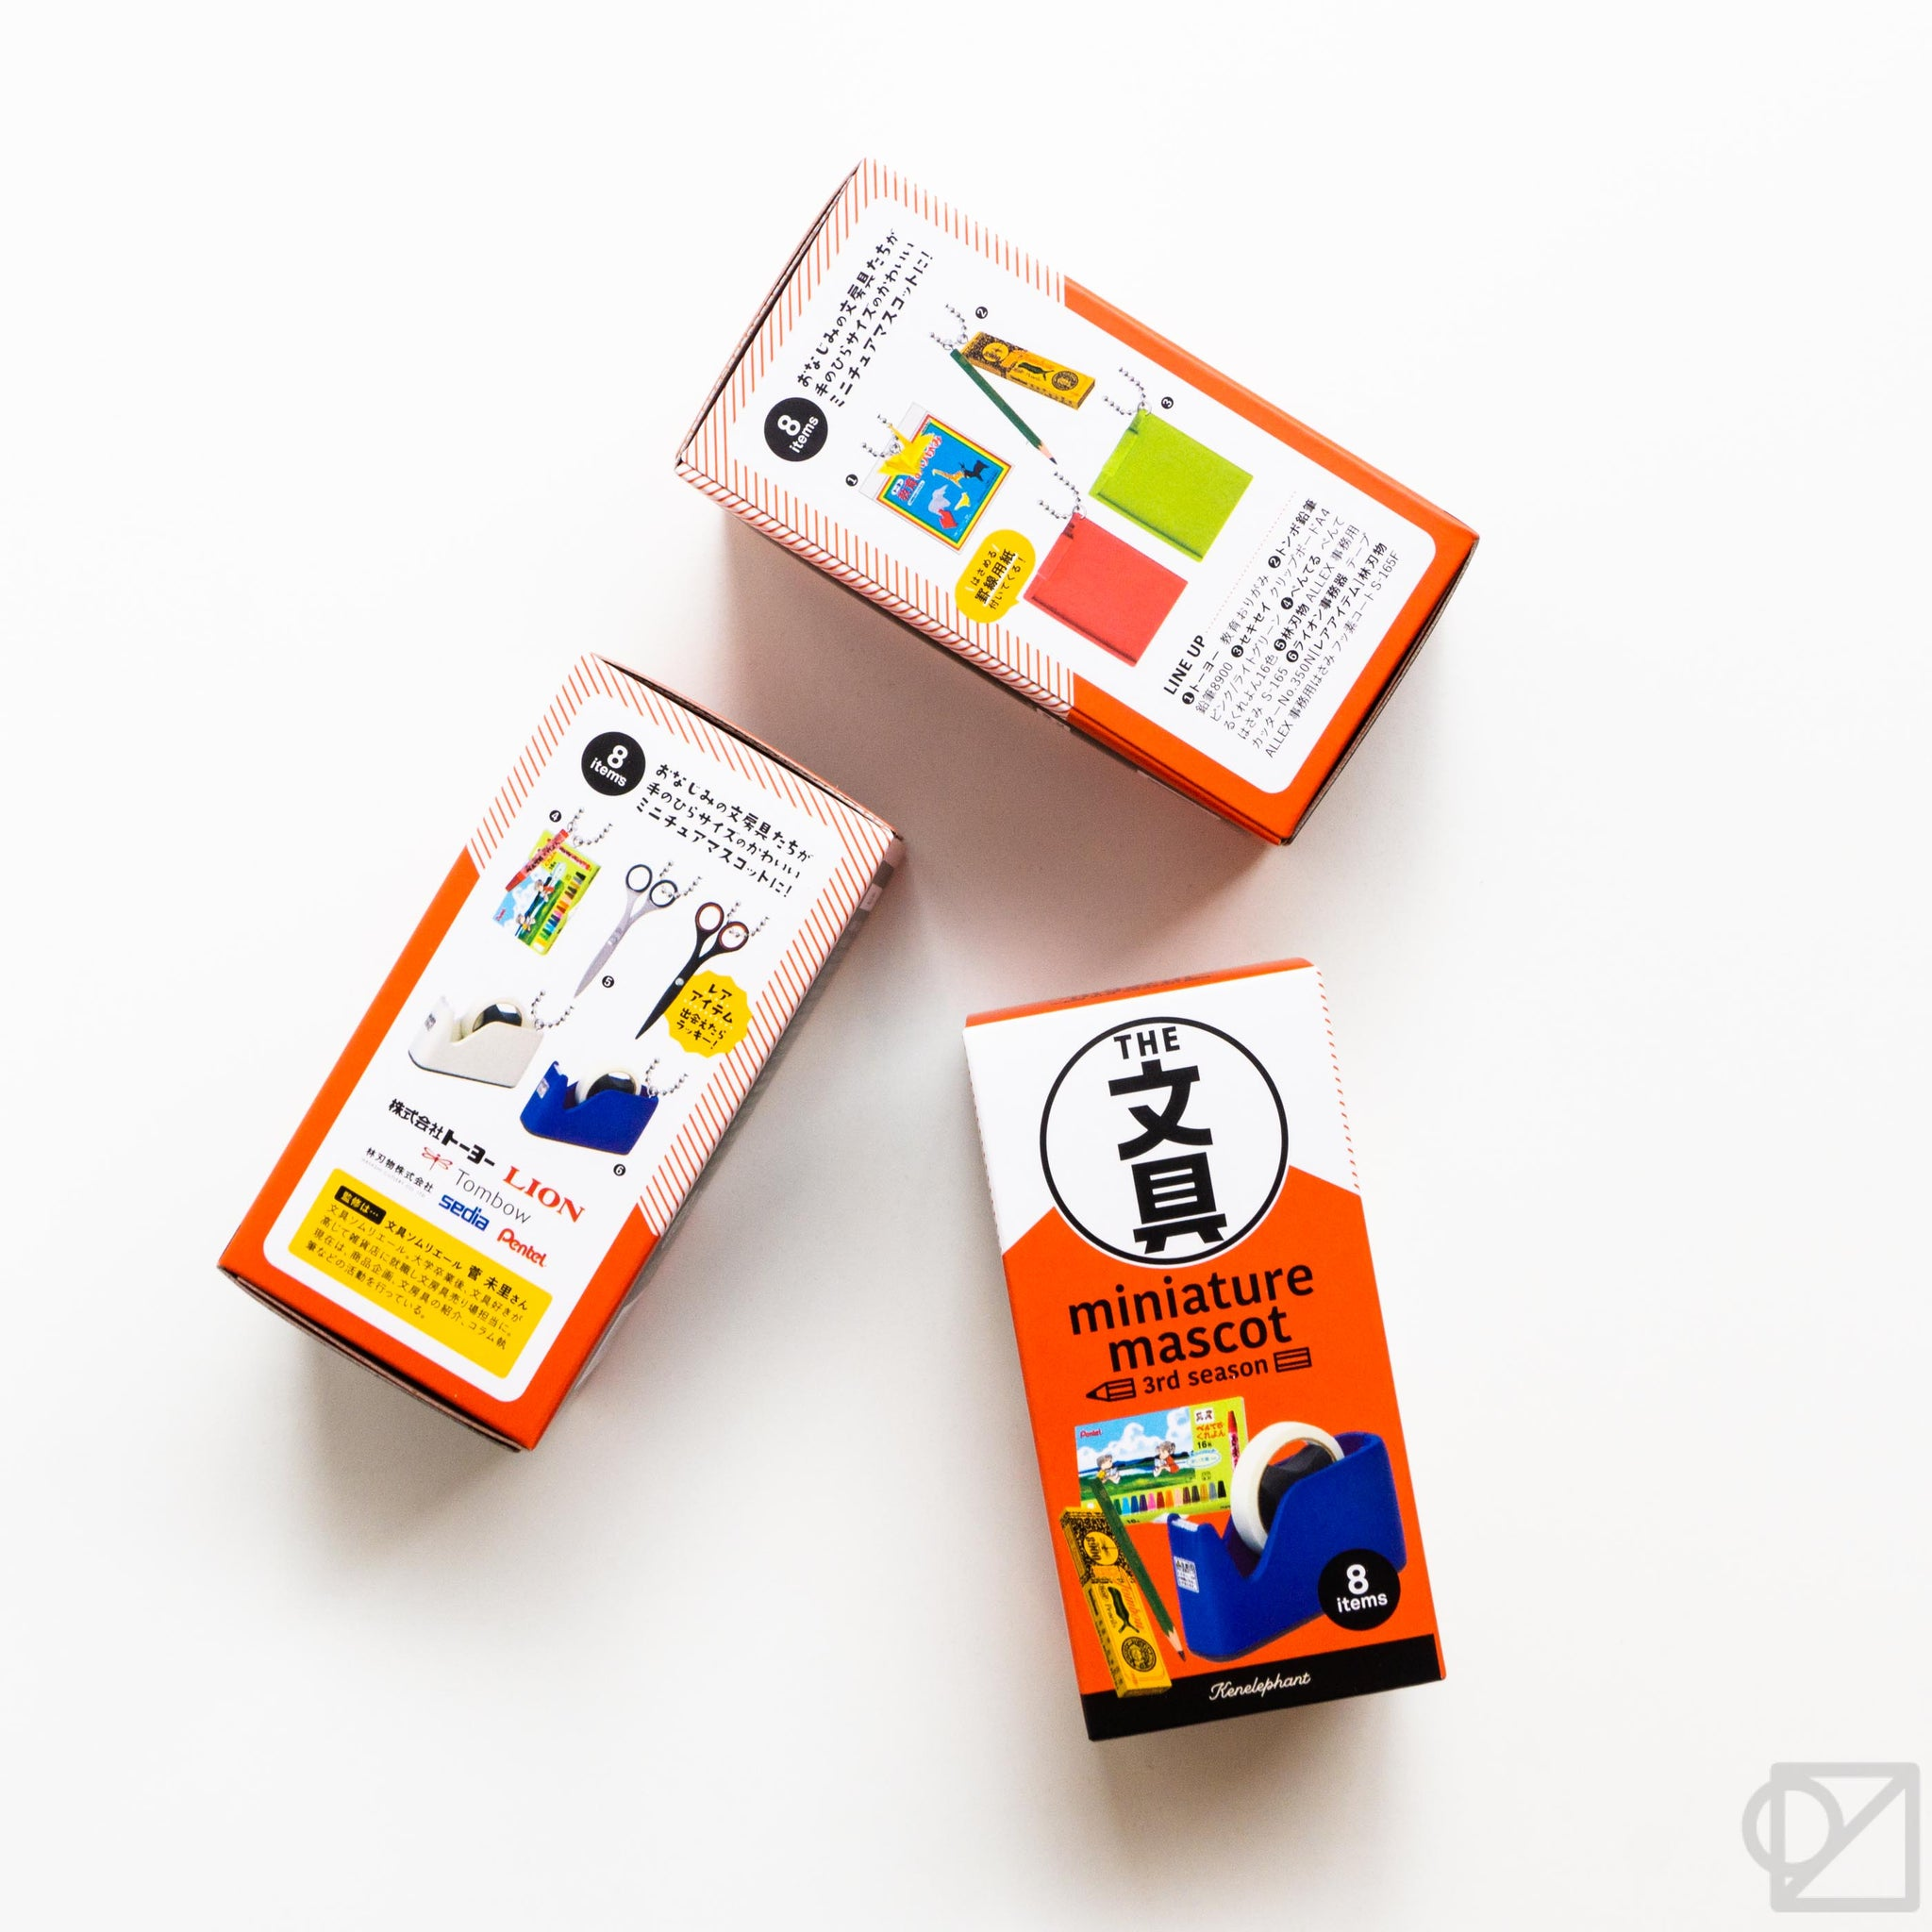 Japanese Stationery Mystery Box Miniature